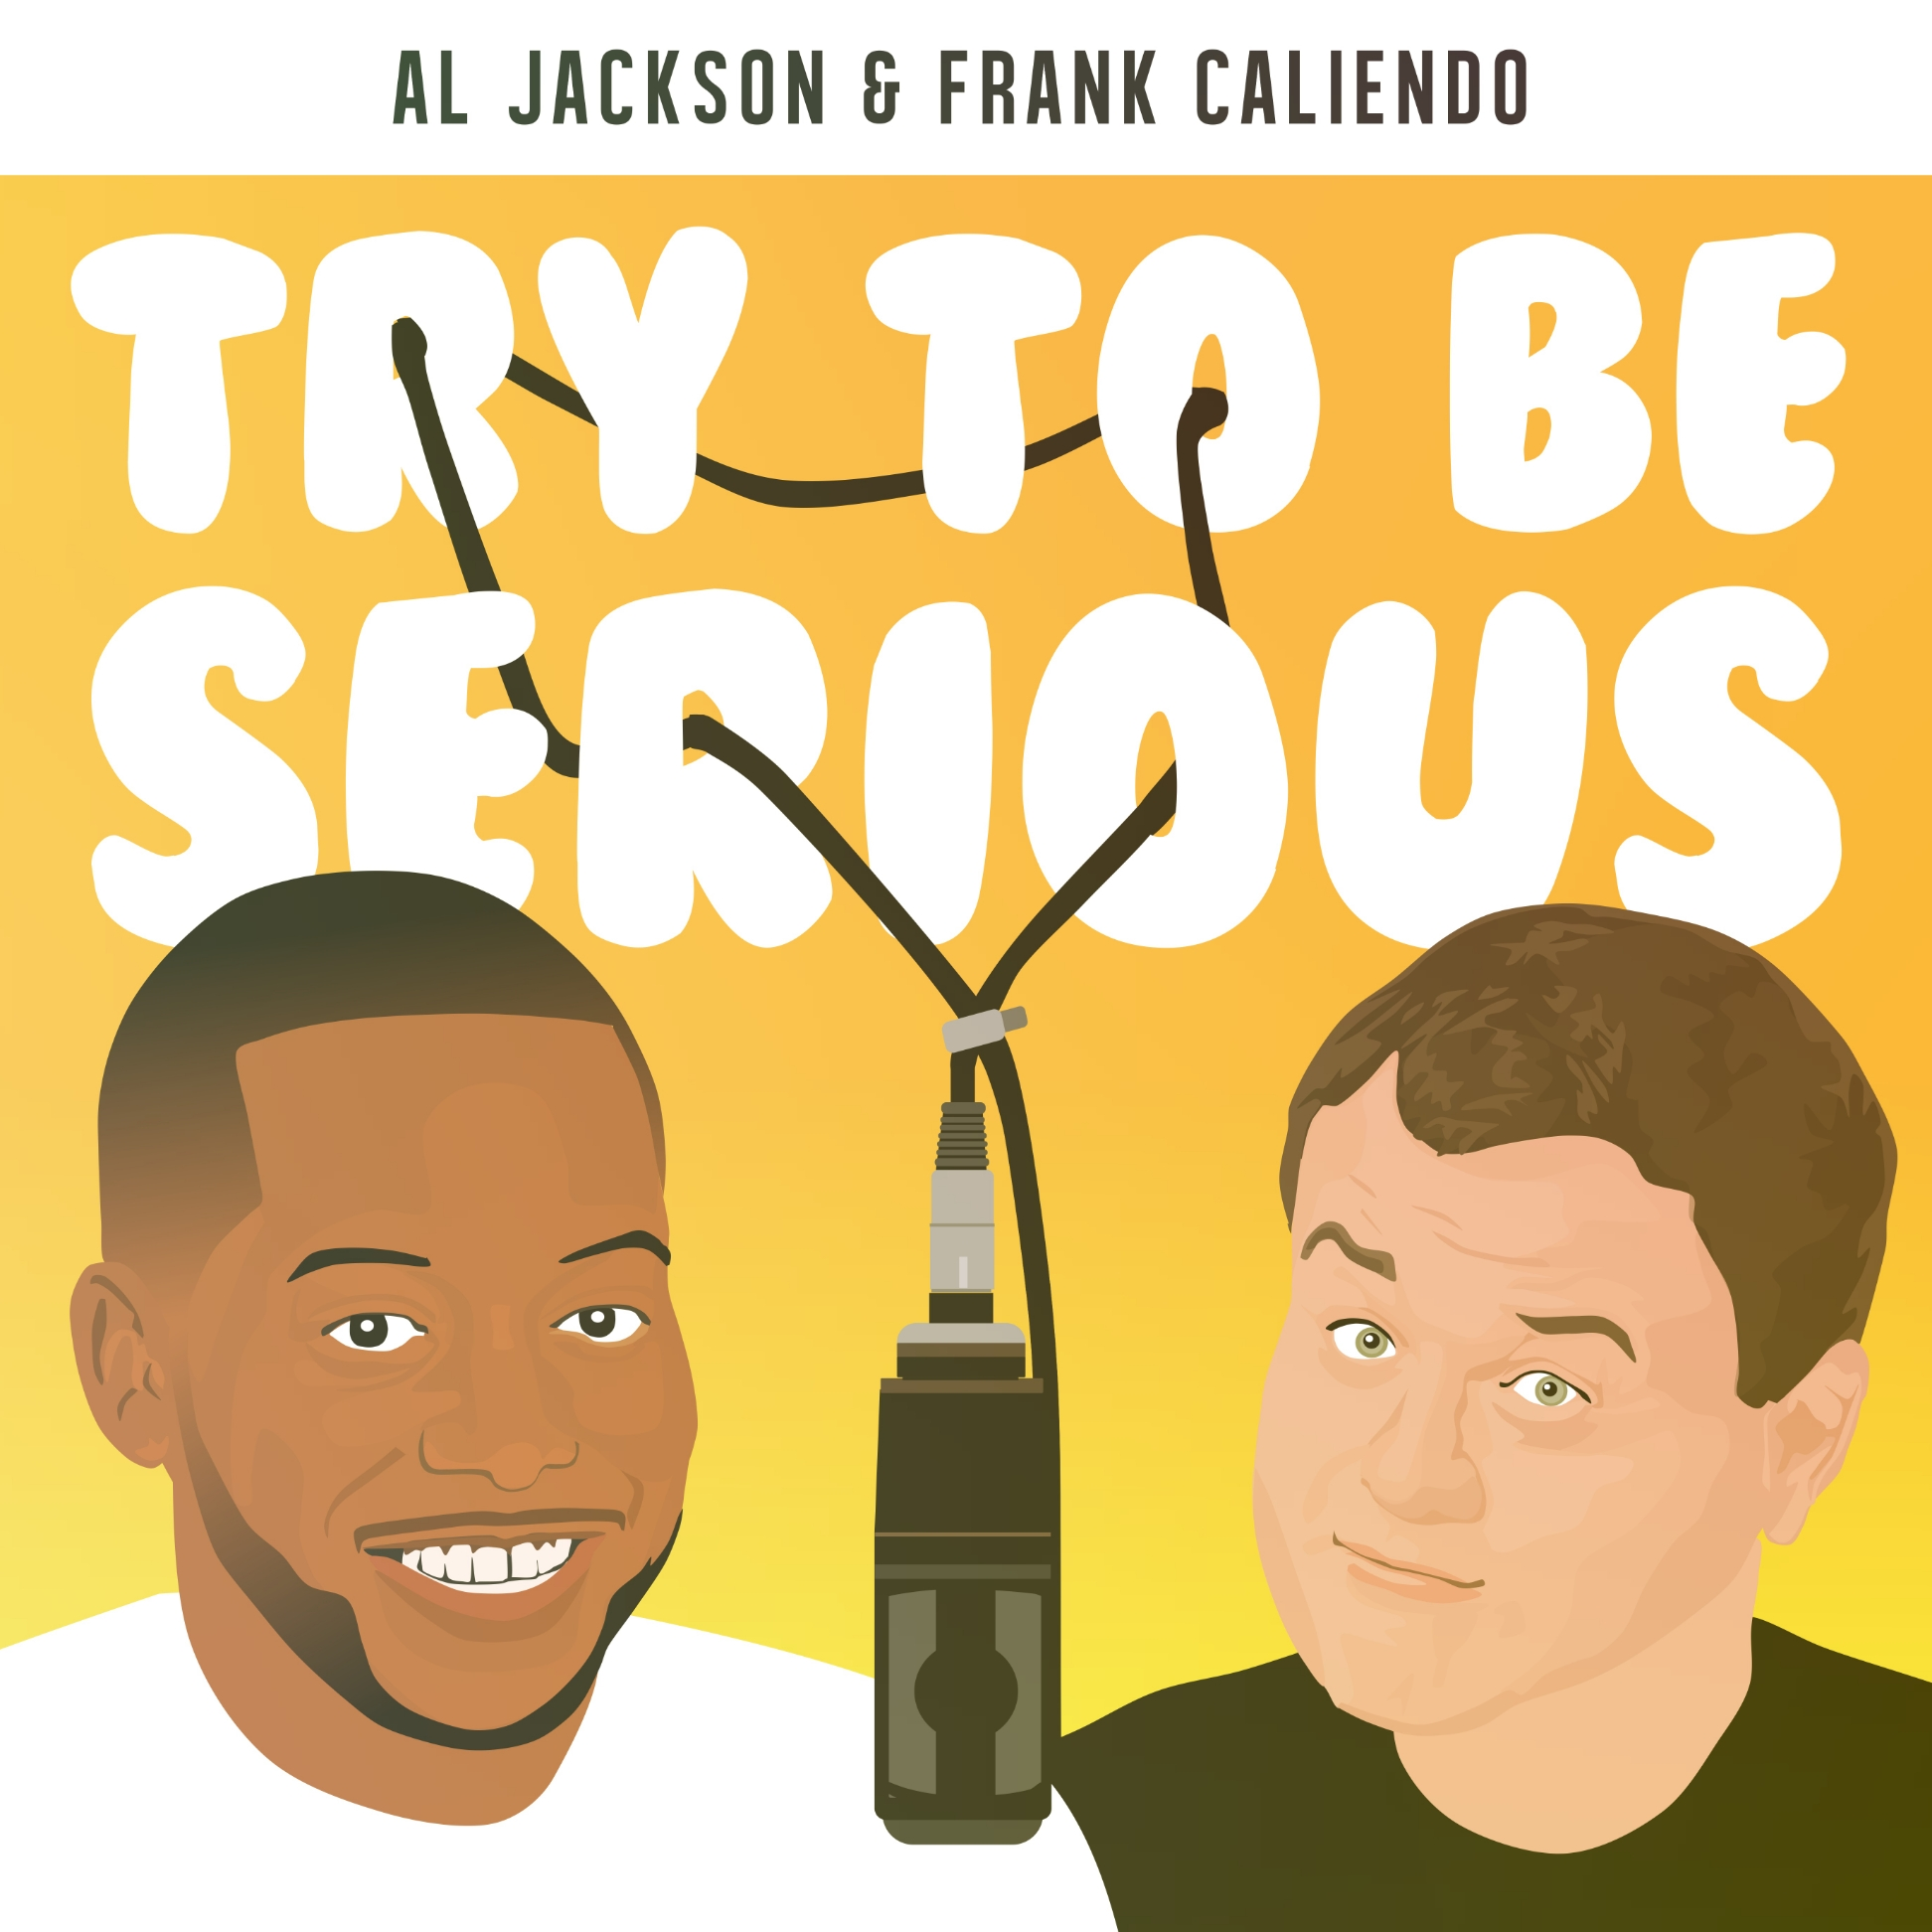 Al Jackson & Frank Caliendo Try To Be Serious